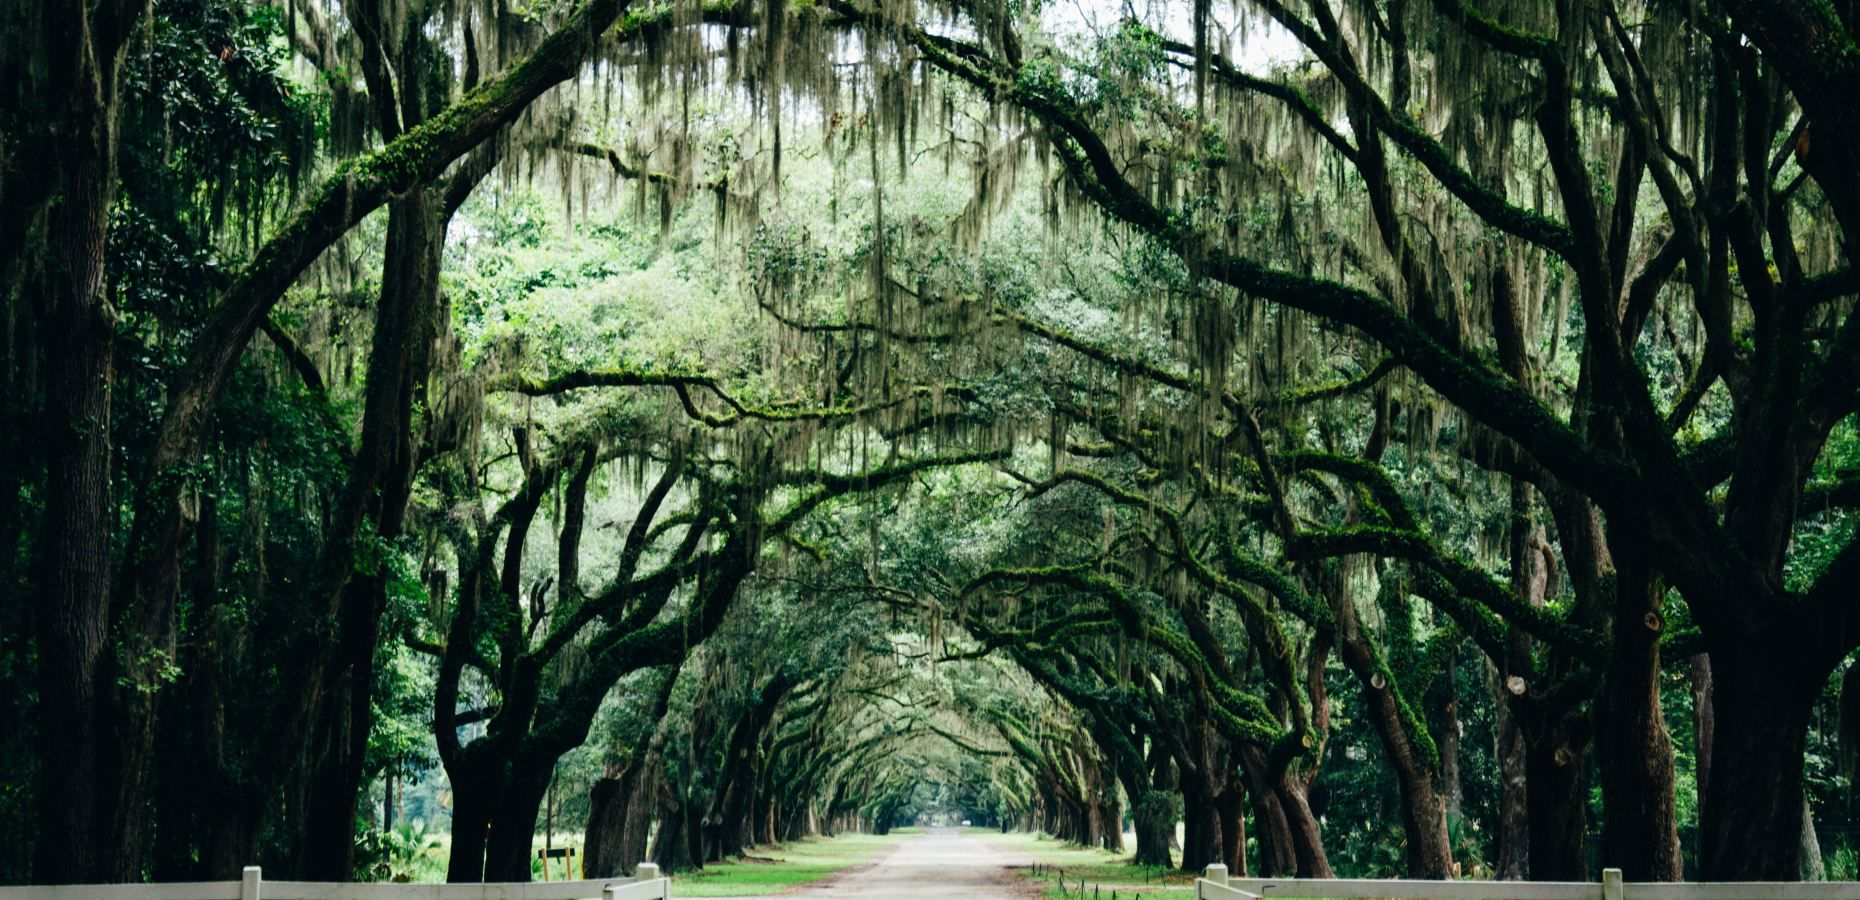 Savannah Ga Things To Do One Day Guide Call It Adventure Savannah Chat Southern Gothic Savannah Attractions